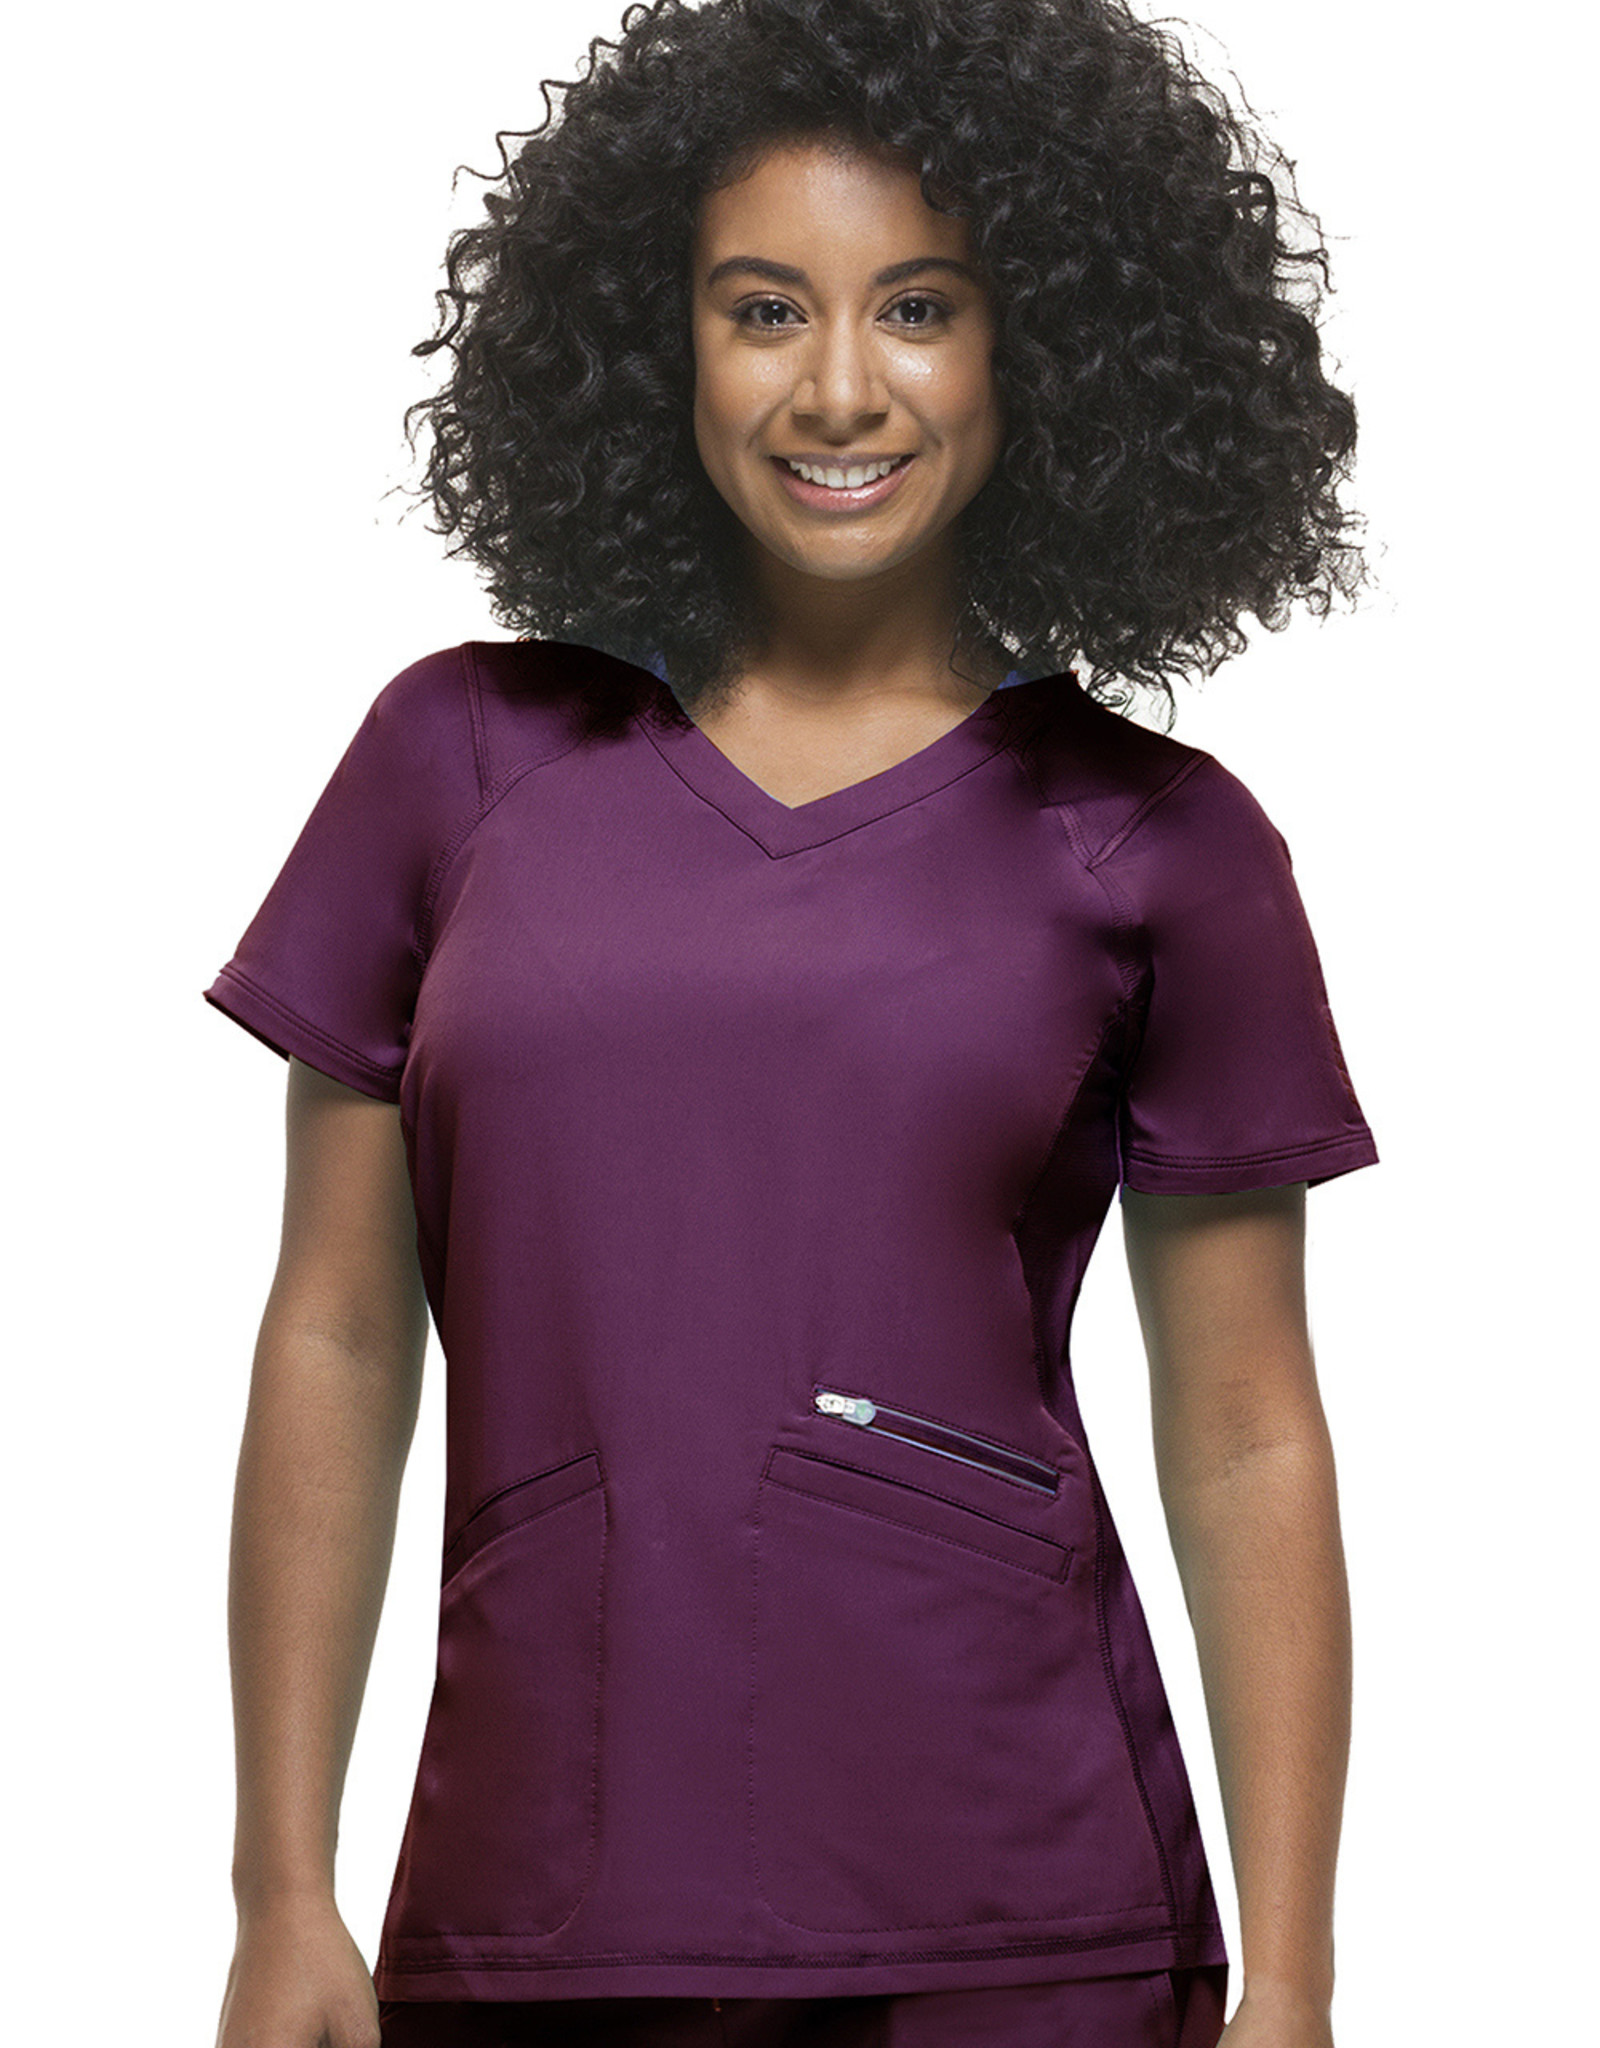 Healing Hands HH 2284 Serena Top